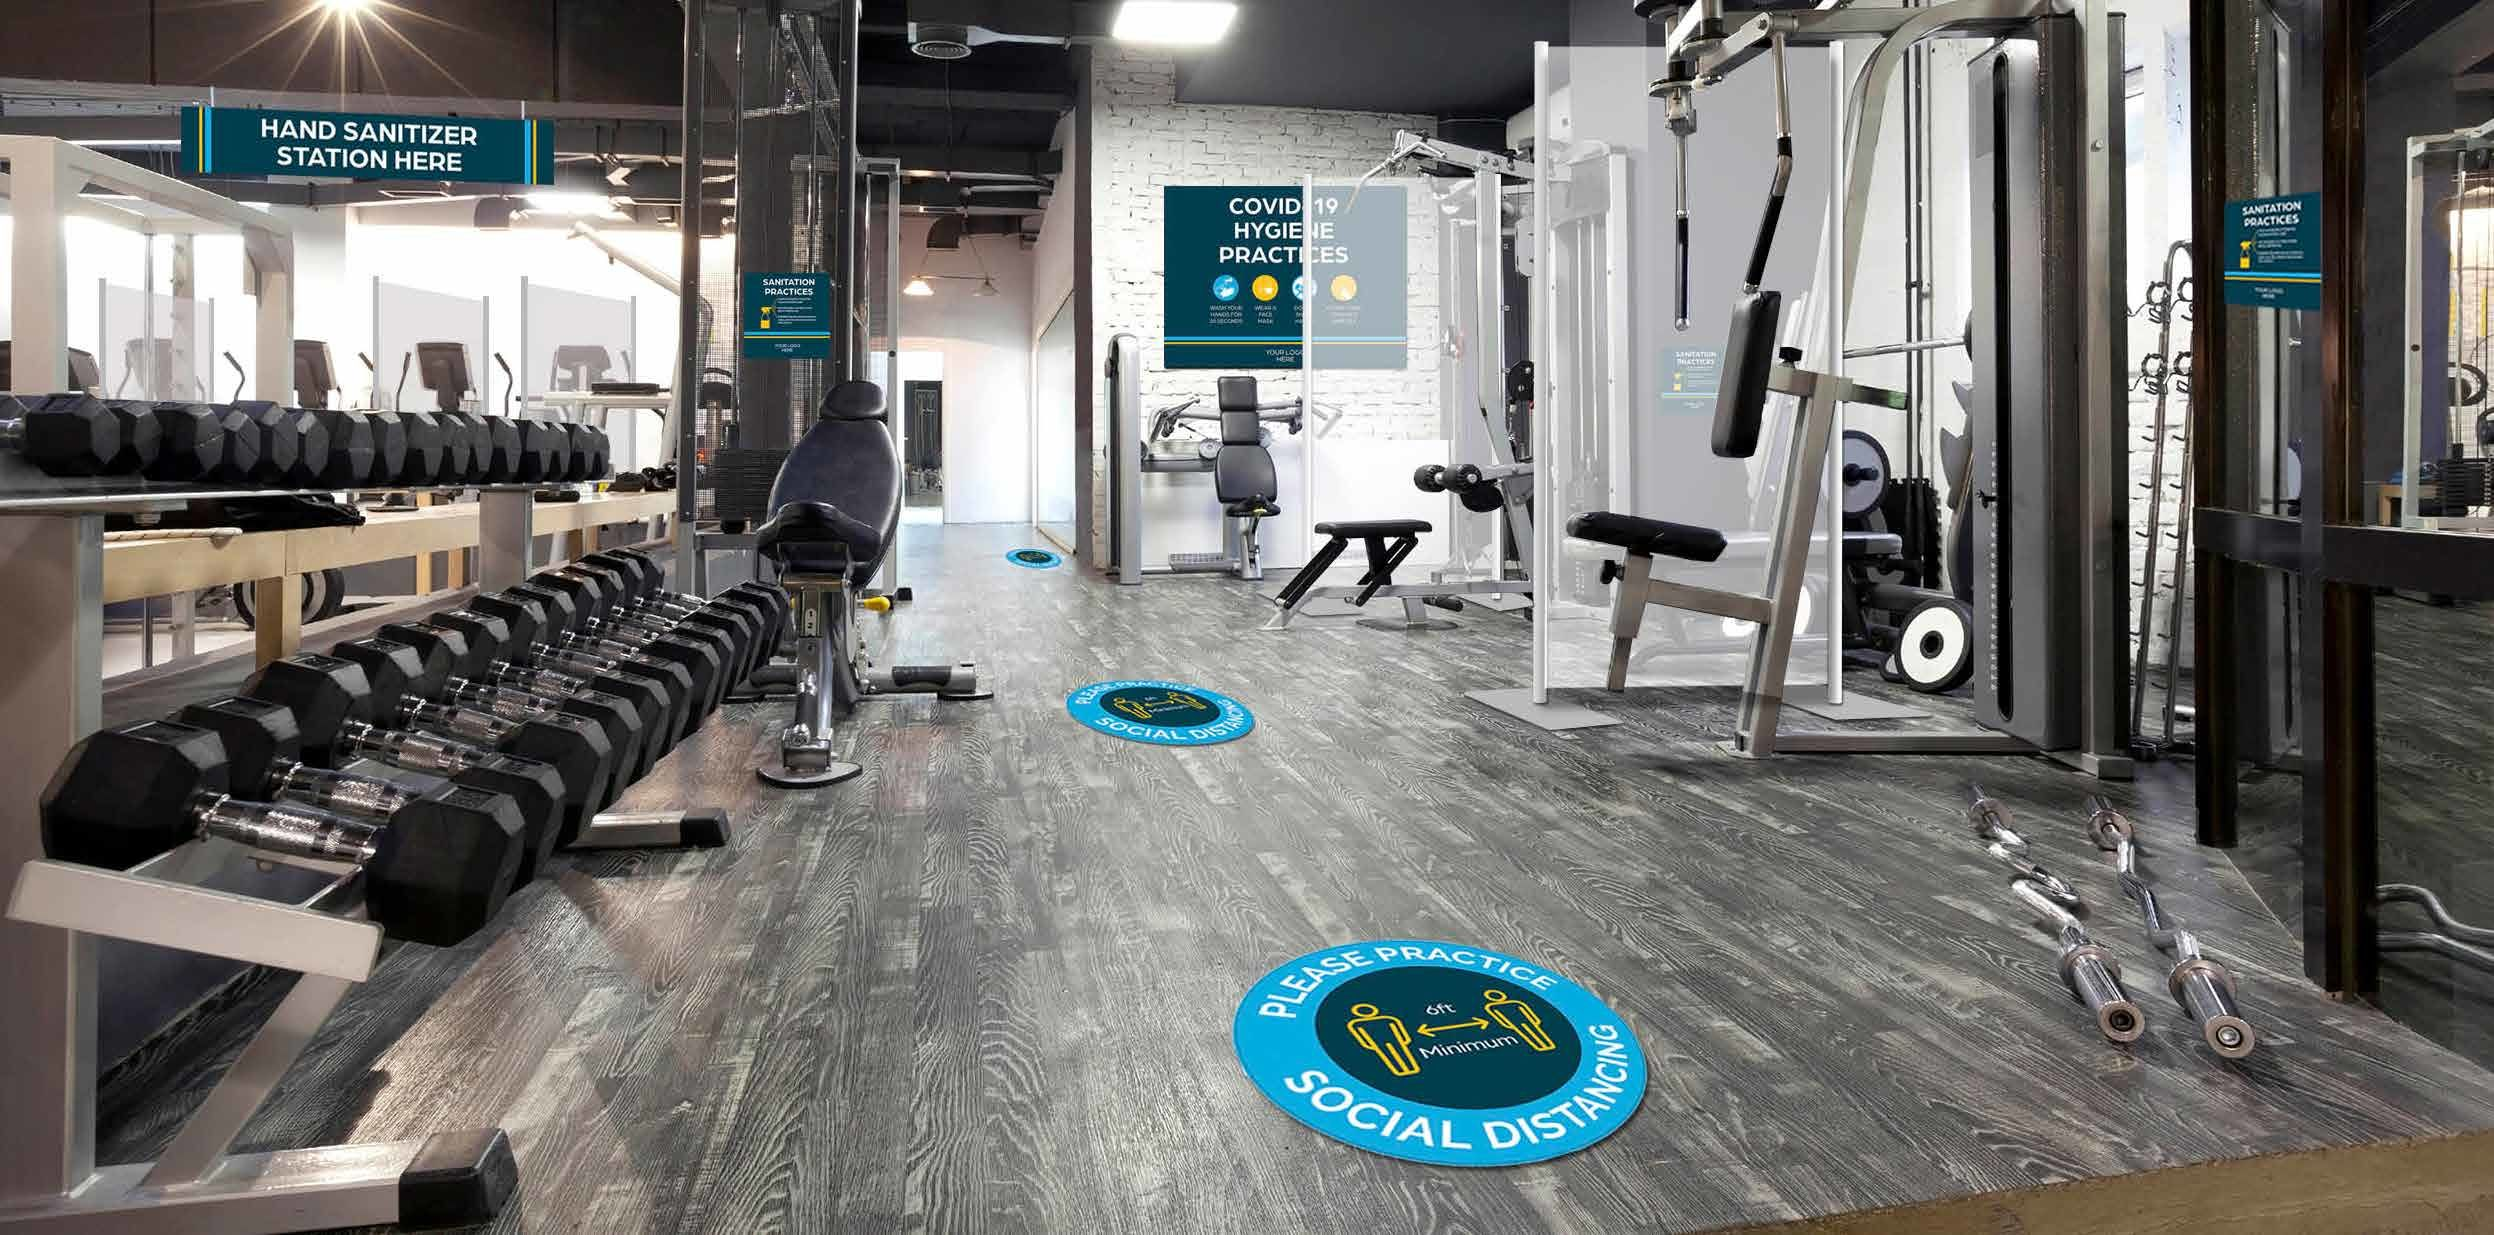 Fitness Center Reopening Signs